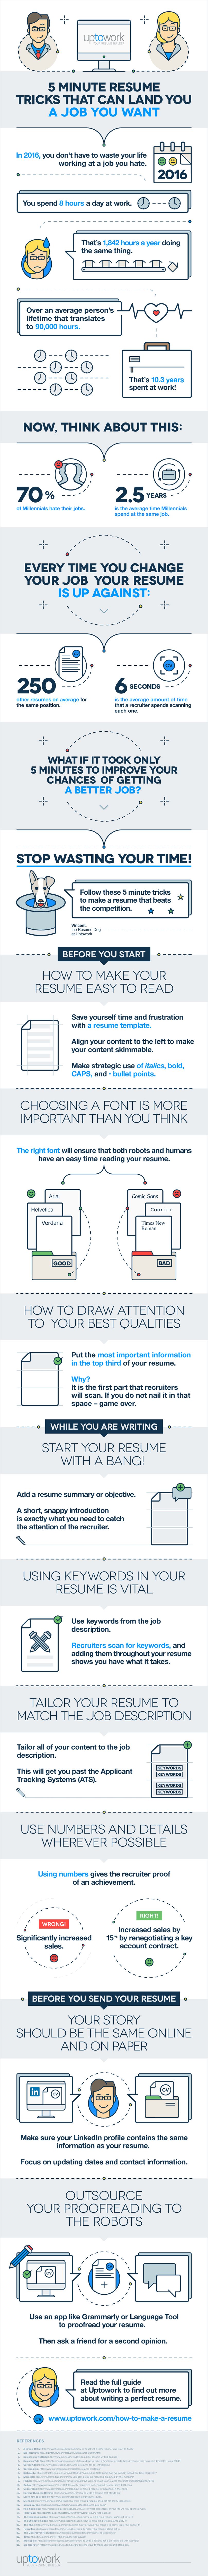 7 Tips On How To Write A Resume That Grabs Recruiters' Attention [Infographic]